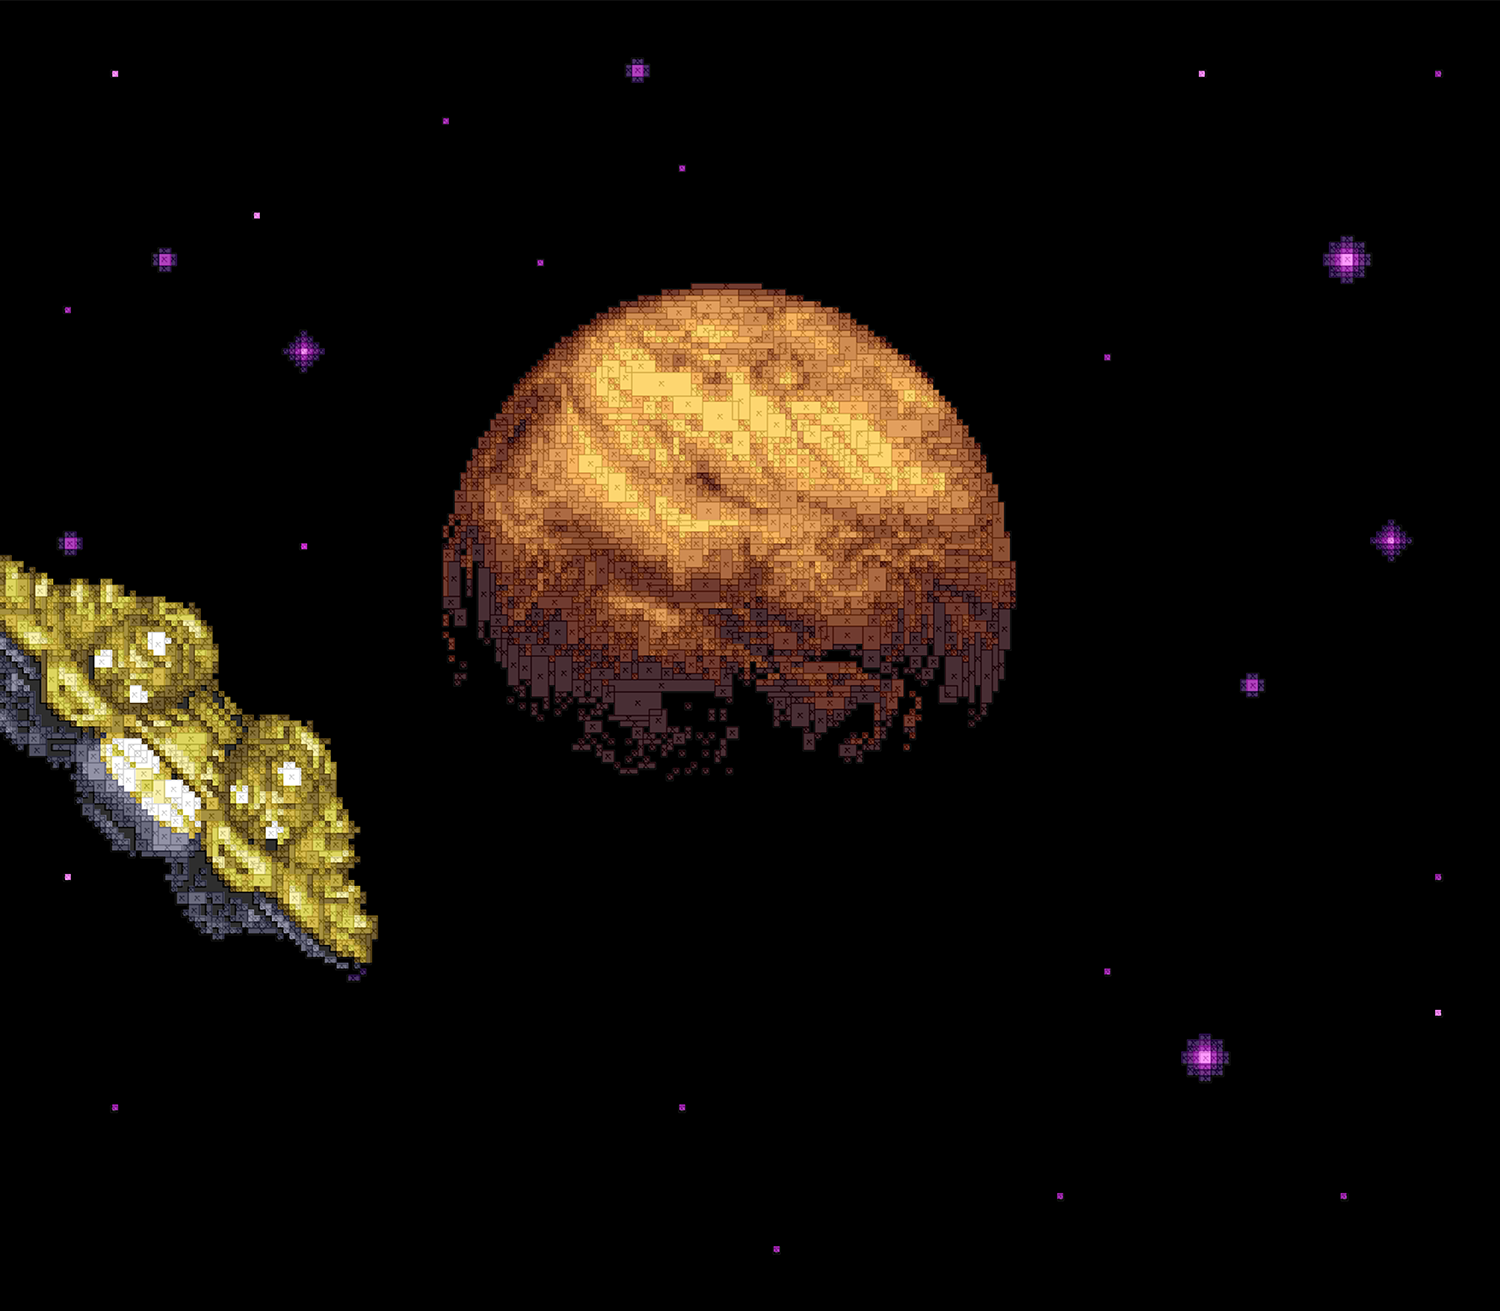 Super Metroid - 16 Bit Vector Recreations